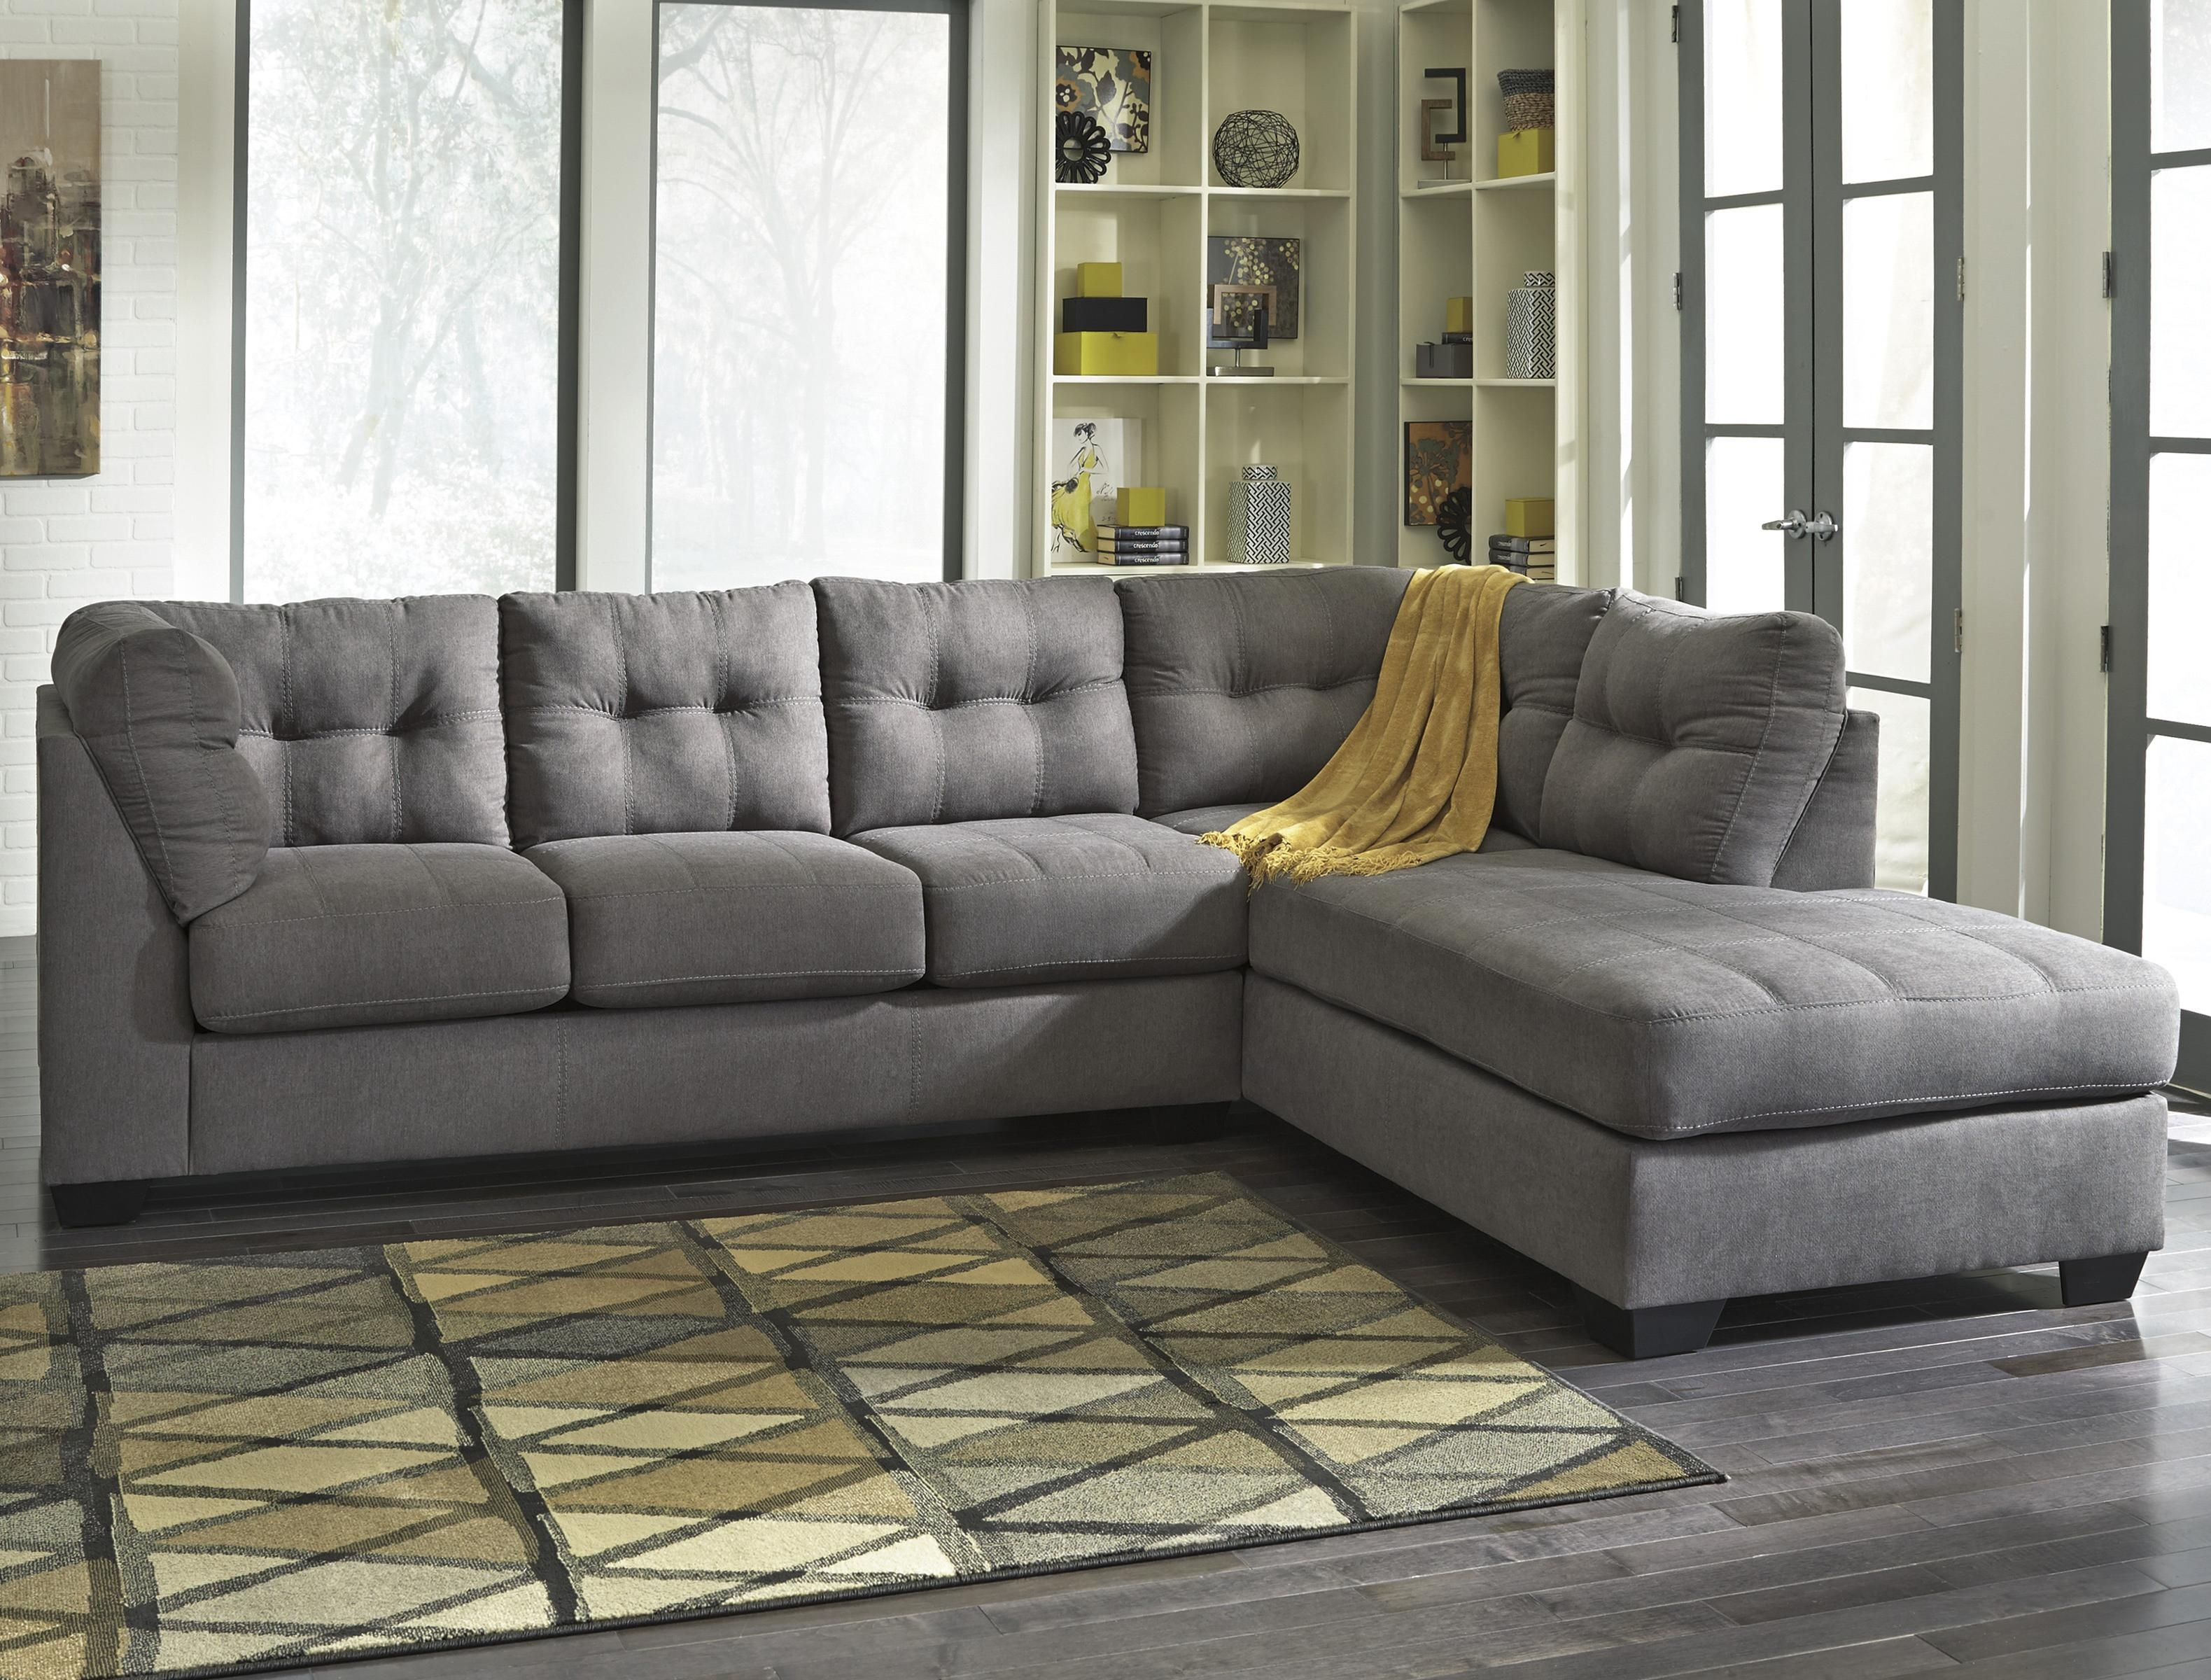 Sectional Sofas Sacramento – Hotelsbacau With Sacramento Sectional Sofas (View 8 of 10)